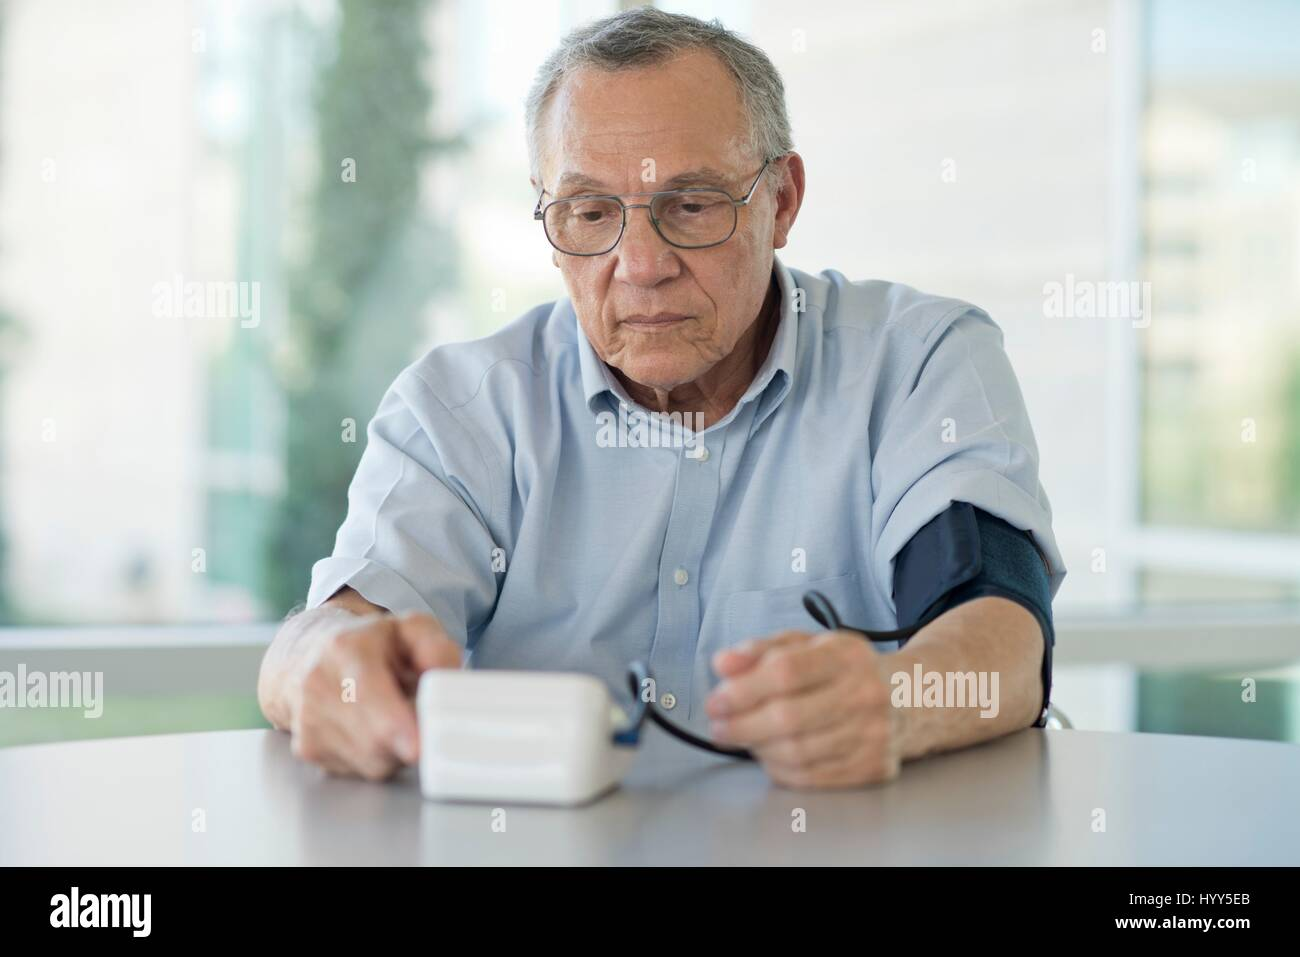 Senior man taking his own blood pressure. - Stock Image